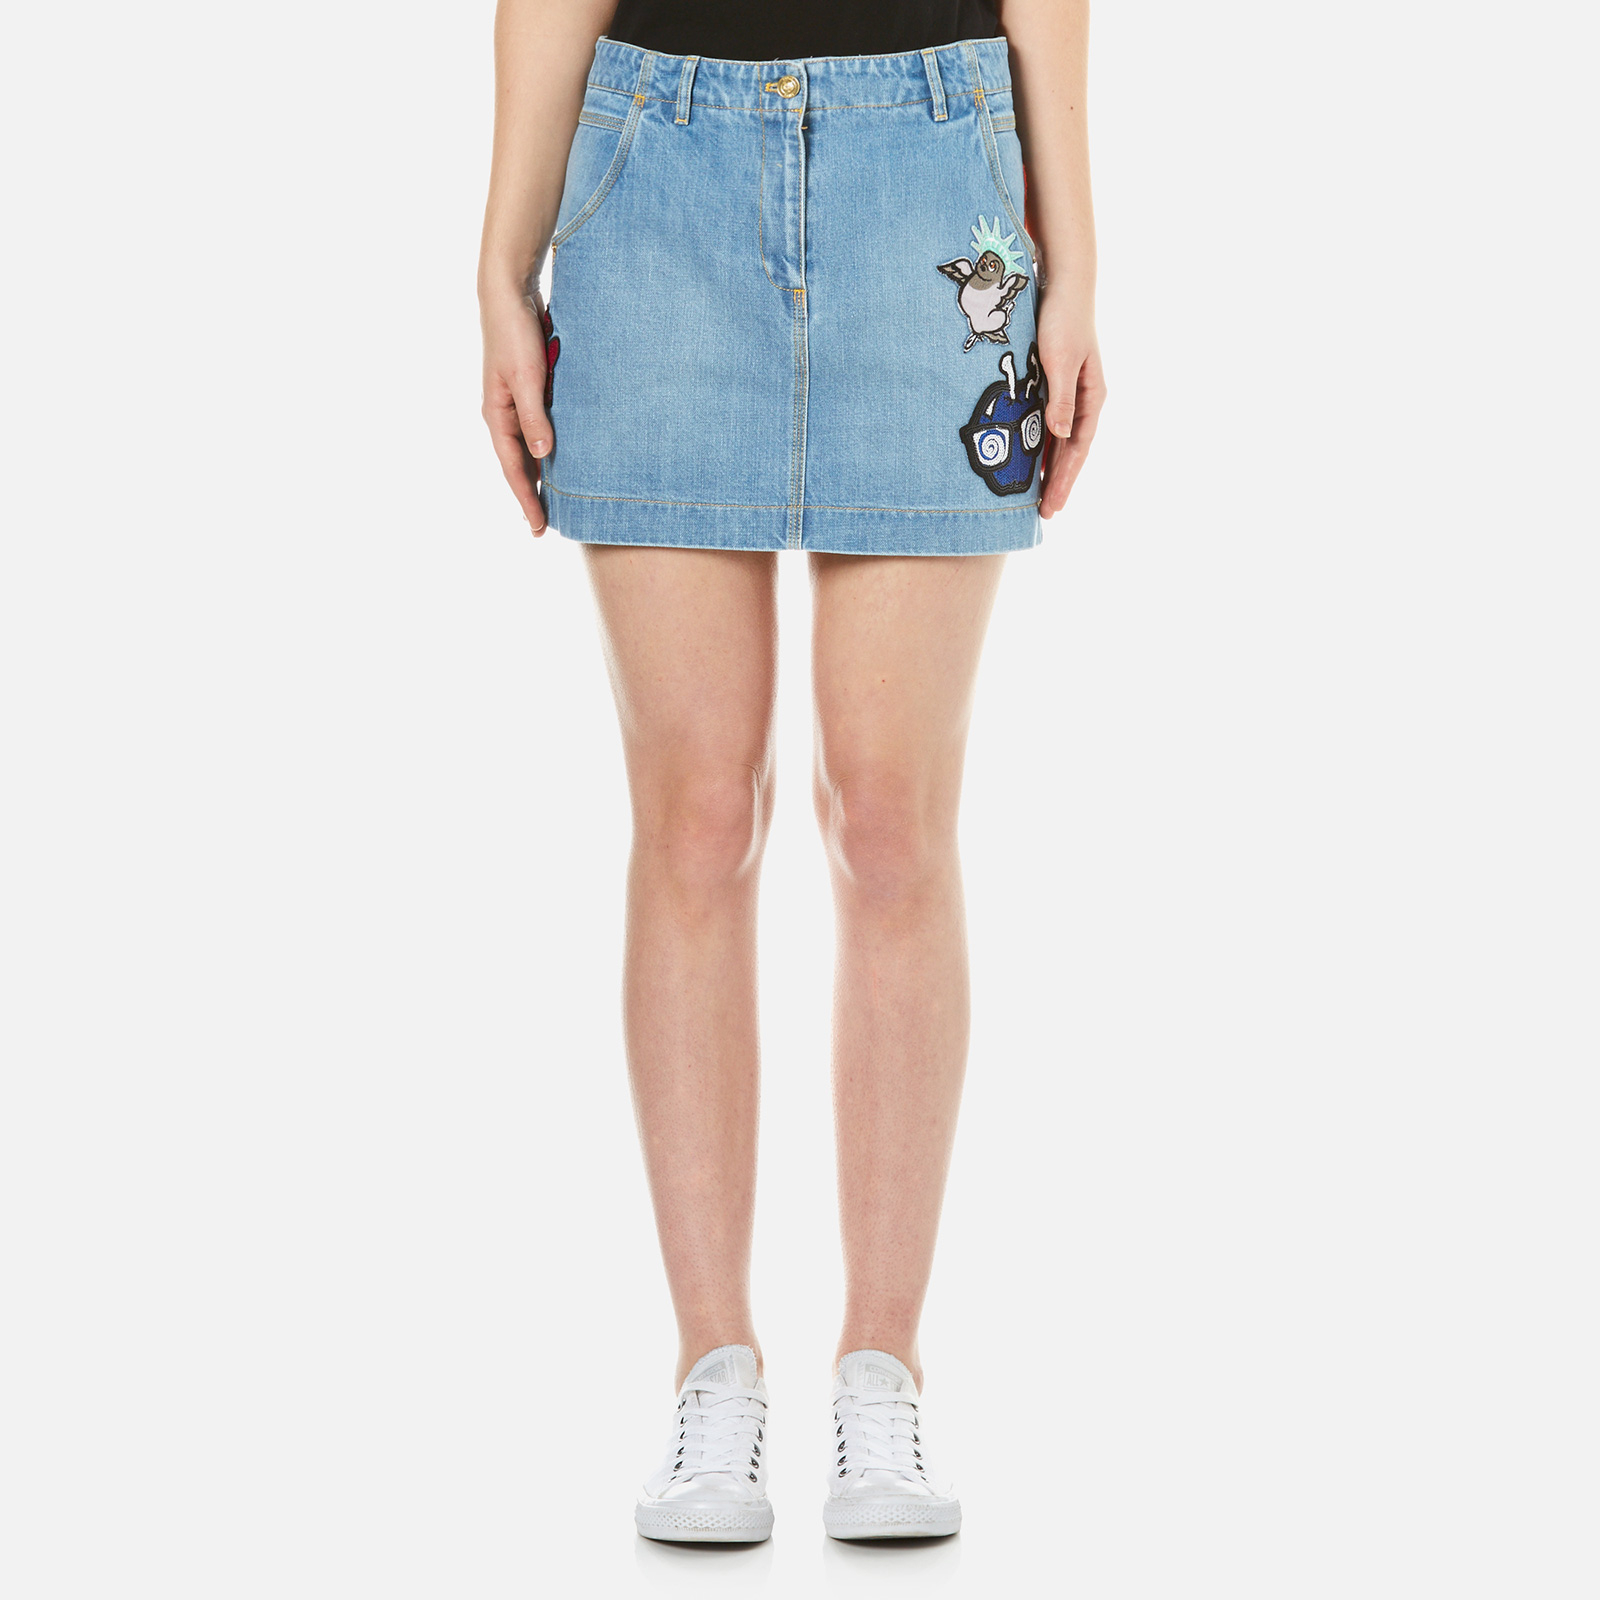 304a8452 KENZO Women's Stone Washed Denim Patchwork Skirt - Blue - Free UK Delivery  over £50